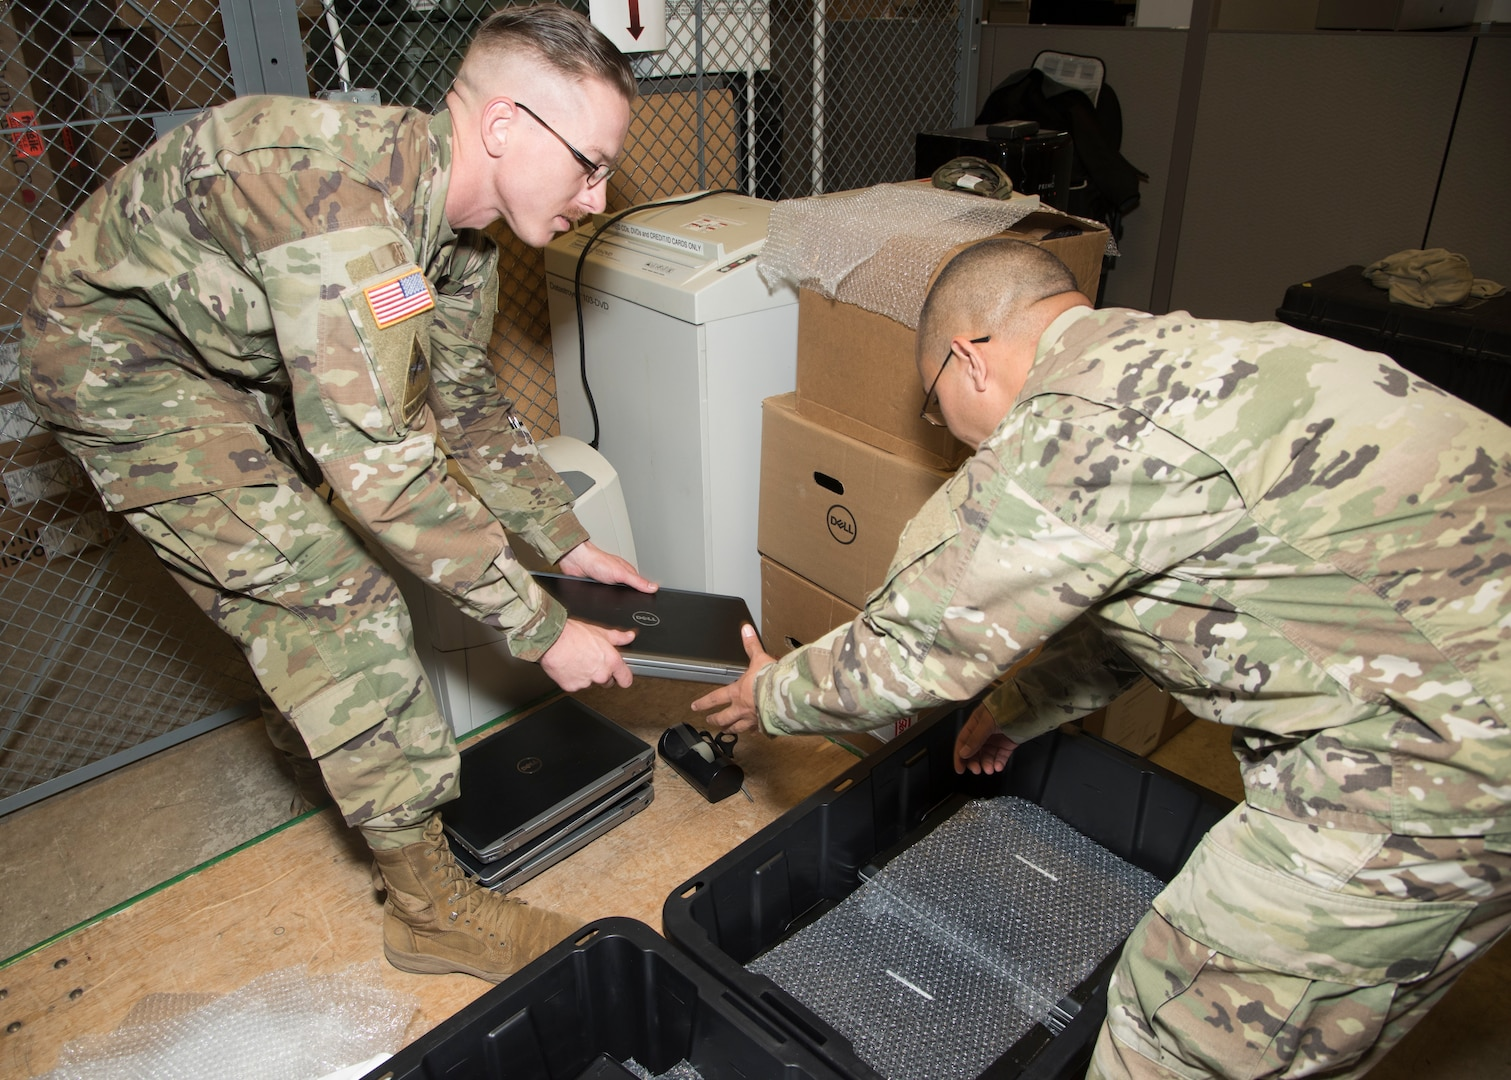 Army Staff Sgt. Marvin Tyler Nelson and Sgt. 1st Class Eugenio Moya, U.S. Army North, pack computers for transport to Wilkinson County High School in Woodville, Mississippi. The computers are being donated to the school through the Department of Defense's Computers for Learning program.